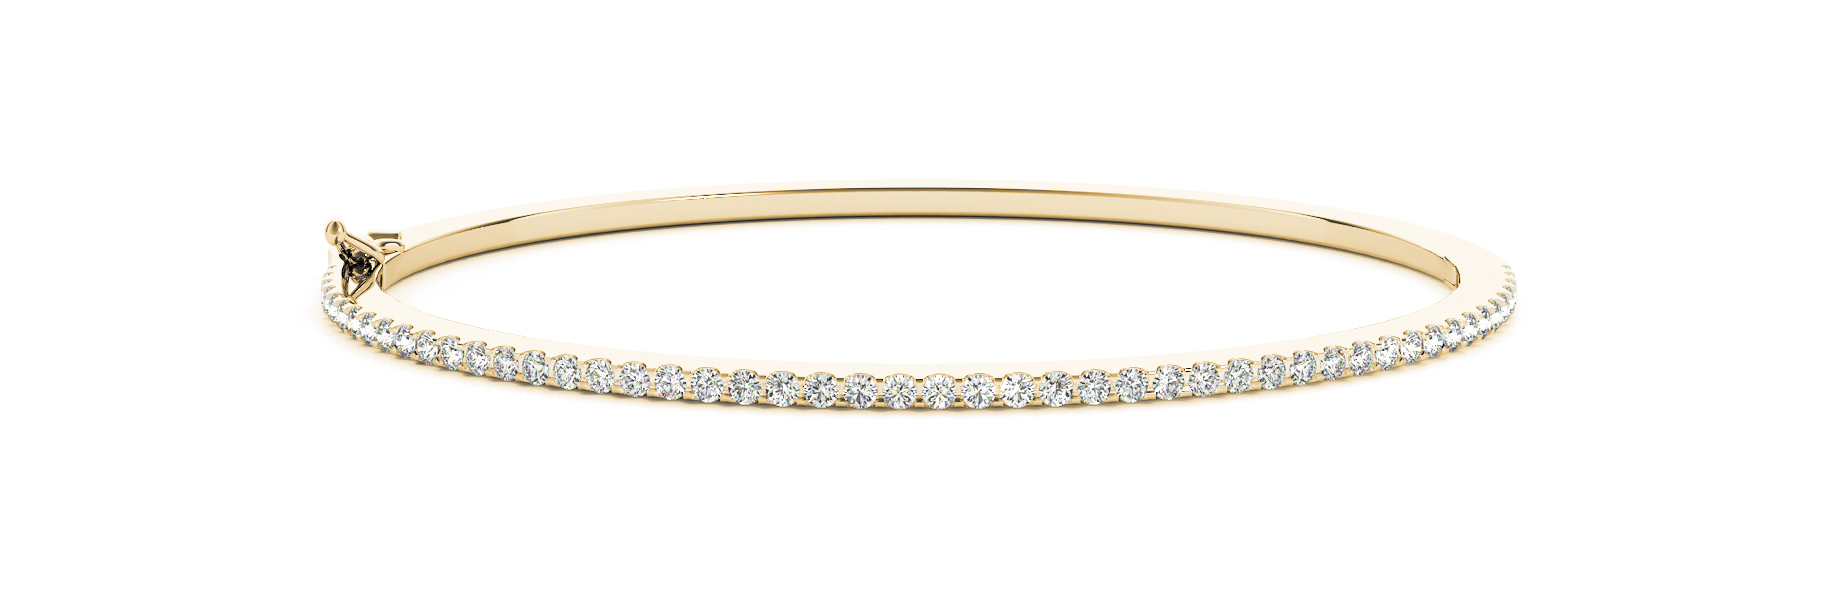 0.82 Carat Round Diamond Bangle in Yellow Gold